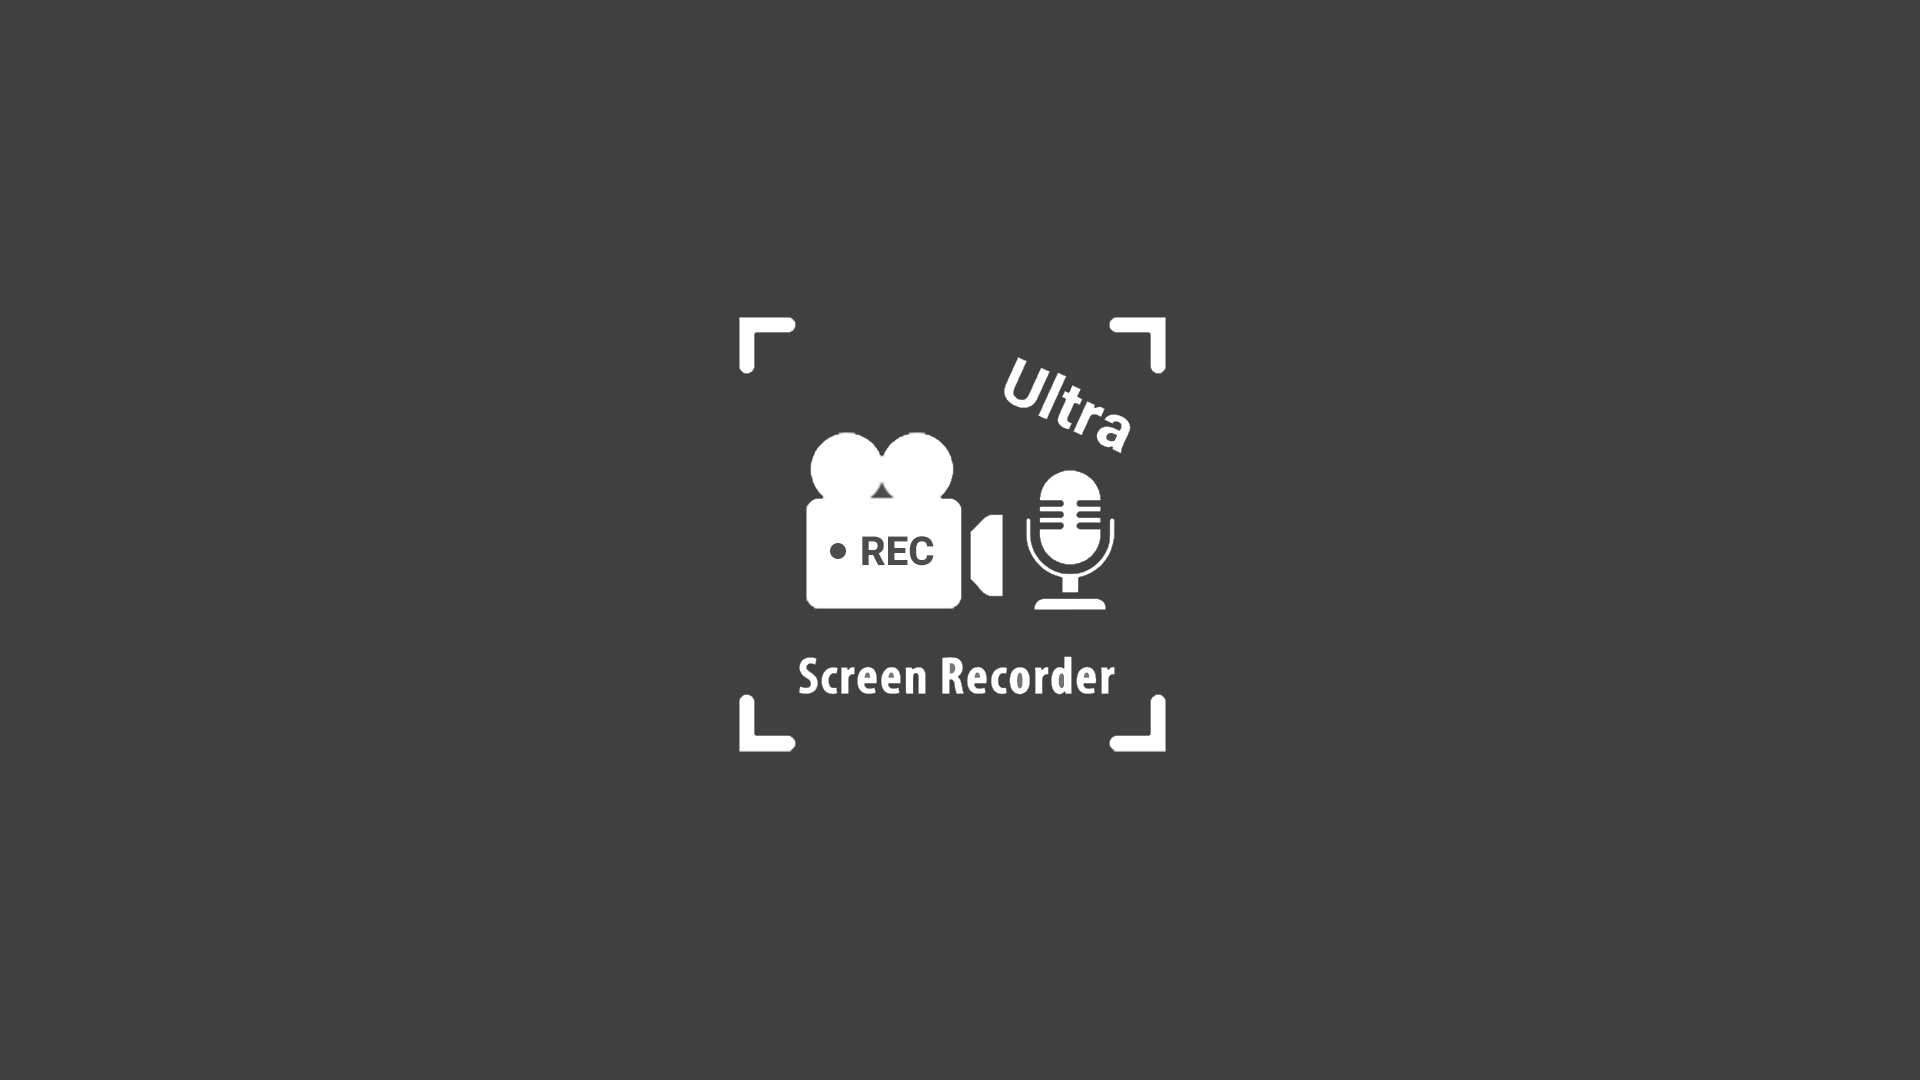 Get Ultra Screen Recorder for Free - Microsoft Store